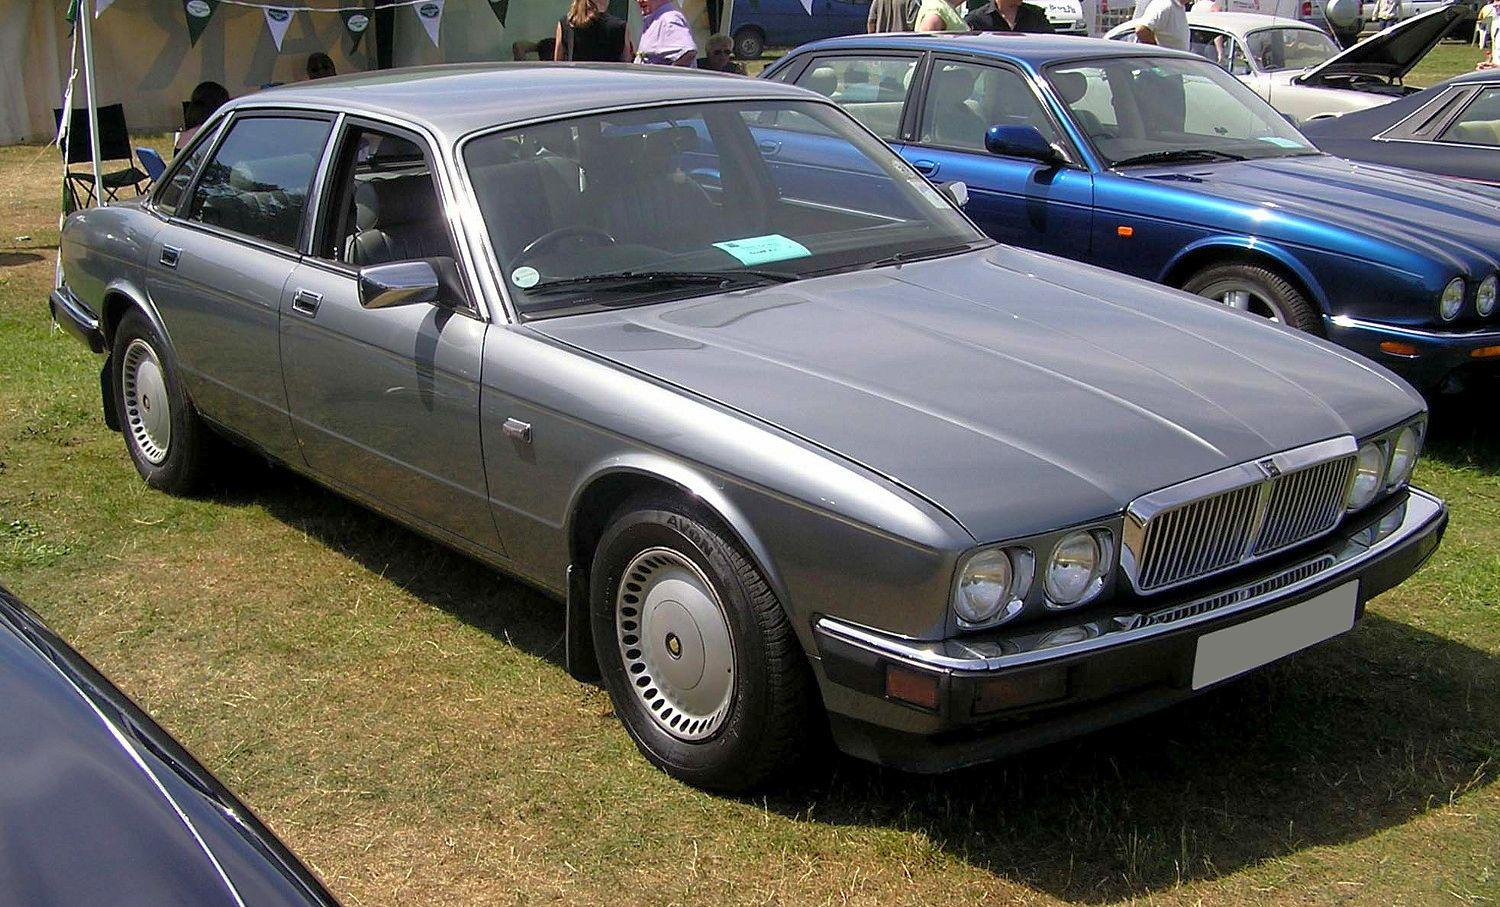 1989 Jaguar XJ6 Arp Wallpaper Download